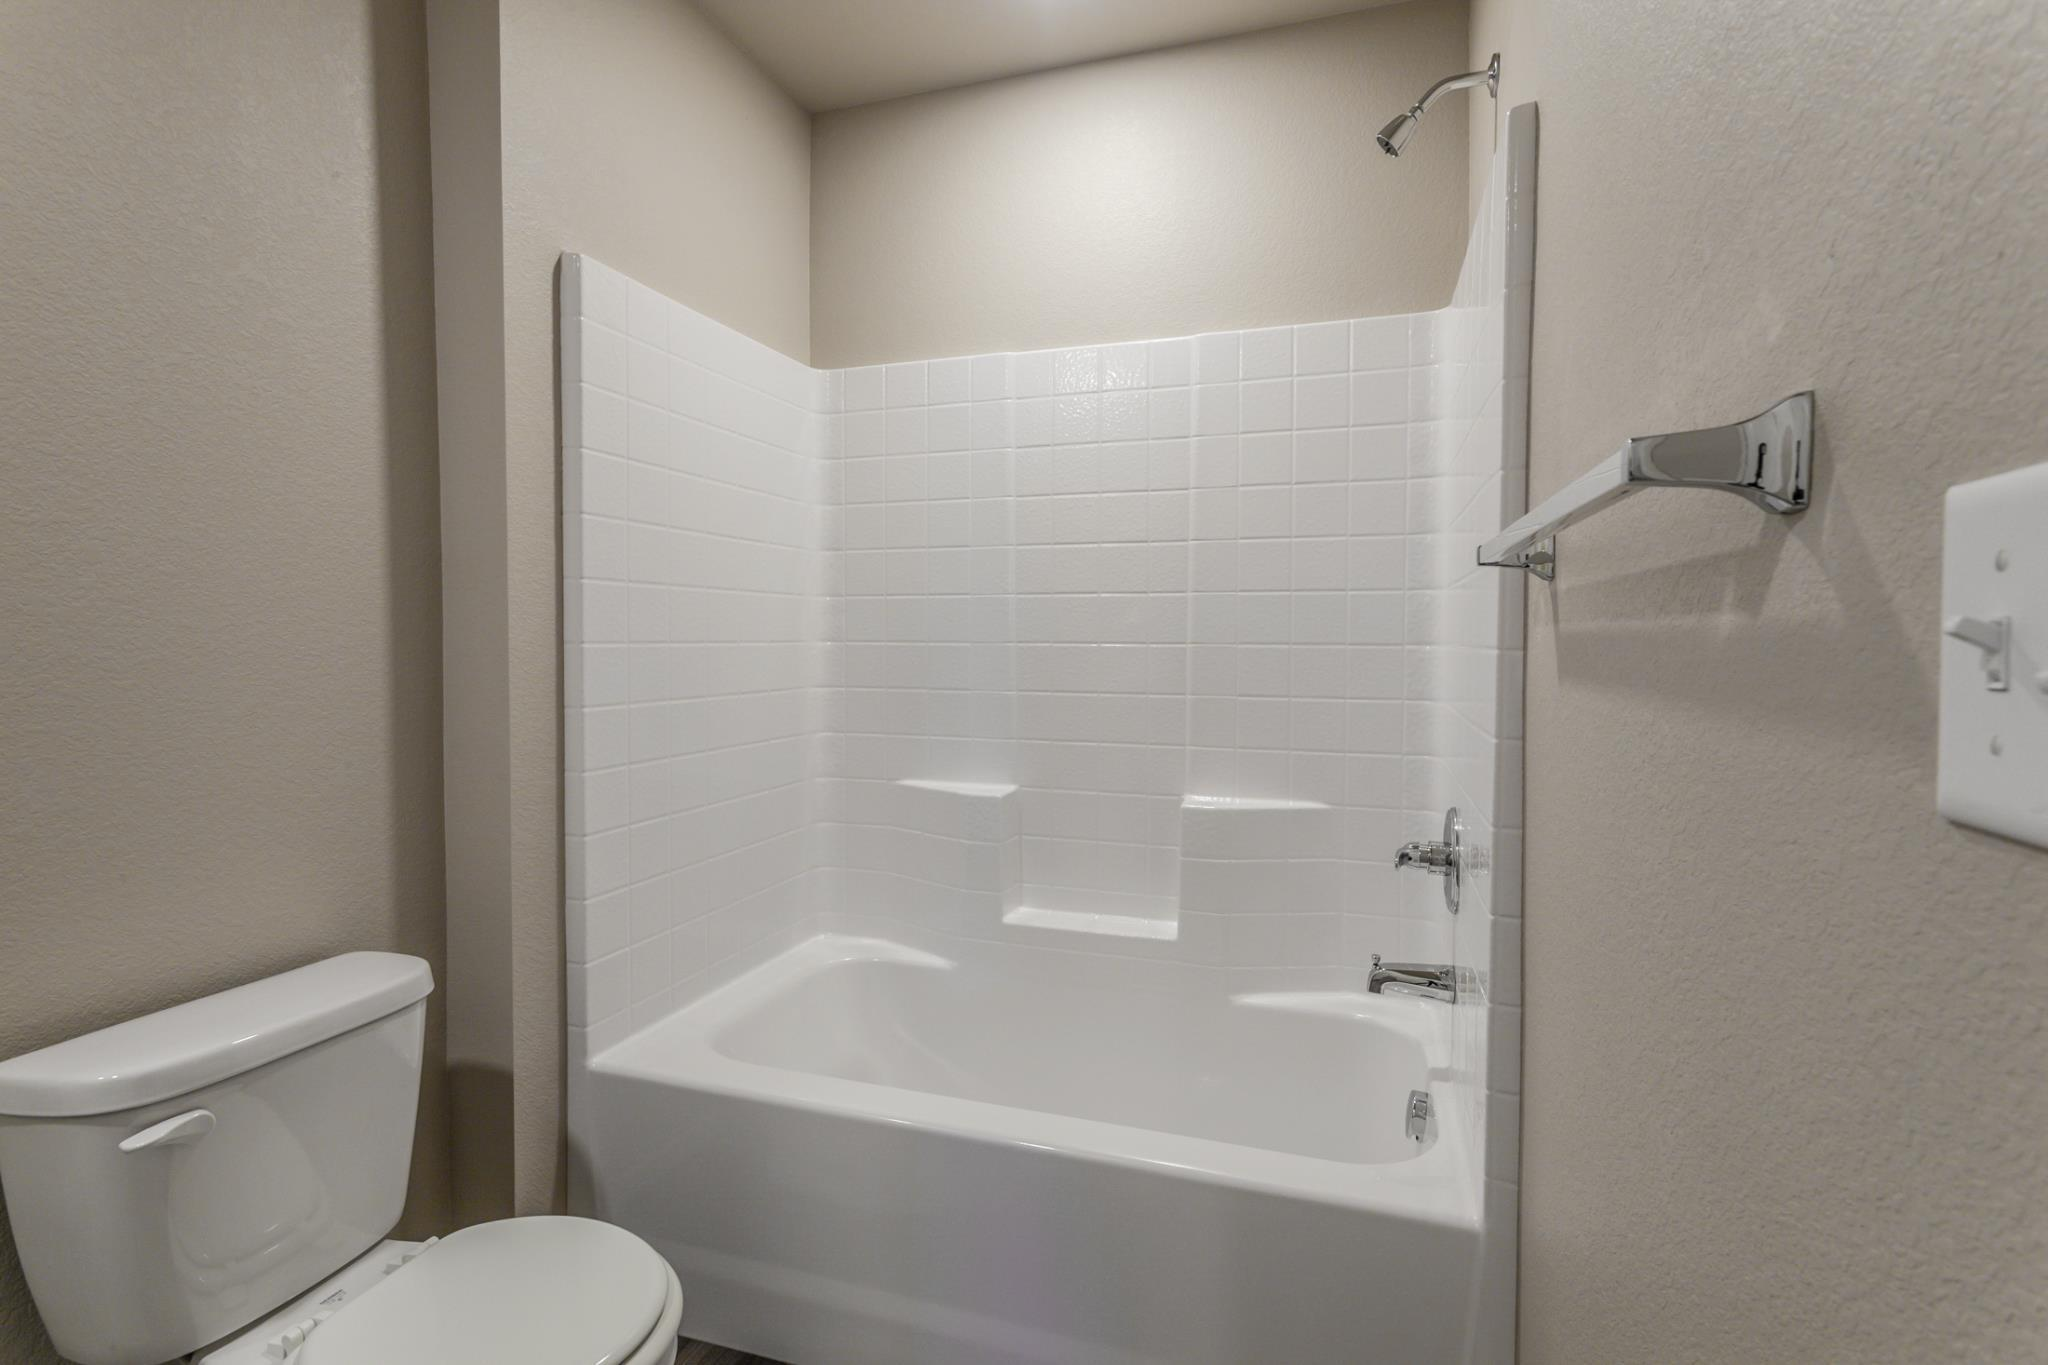 Bathroom featured in the Durango By Hartford Homes in Fort Collins-Loveland, CO